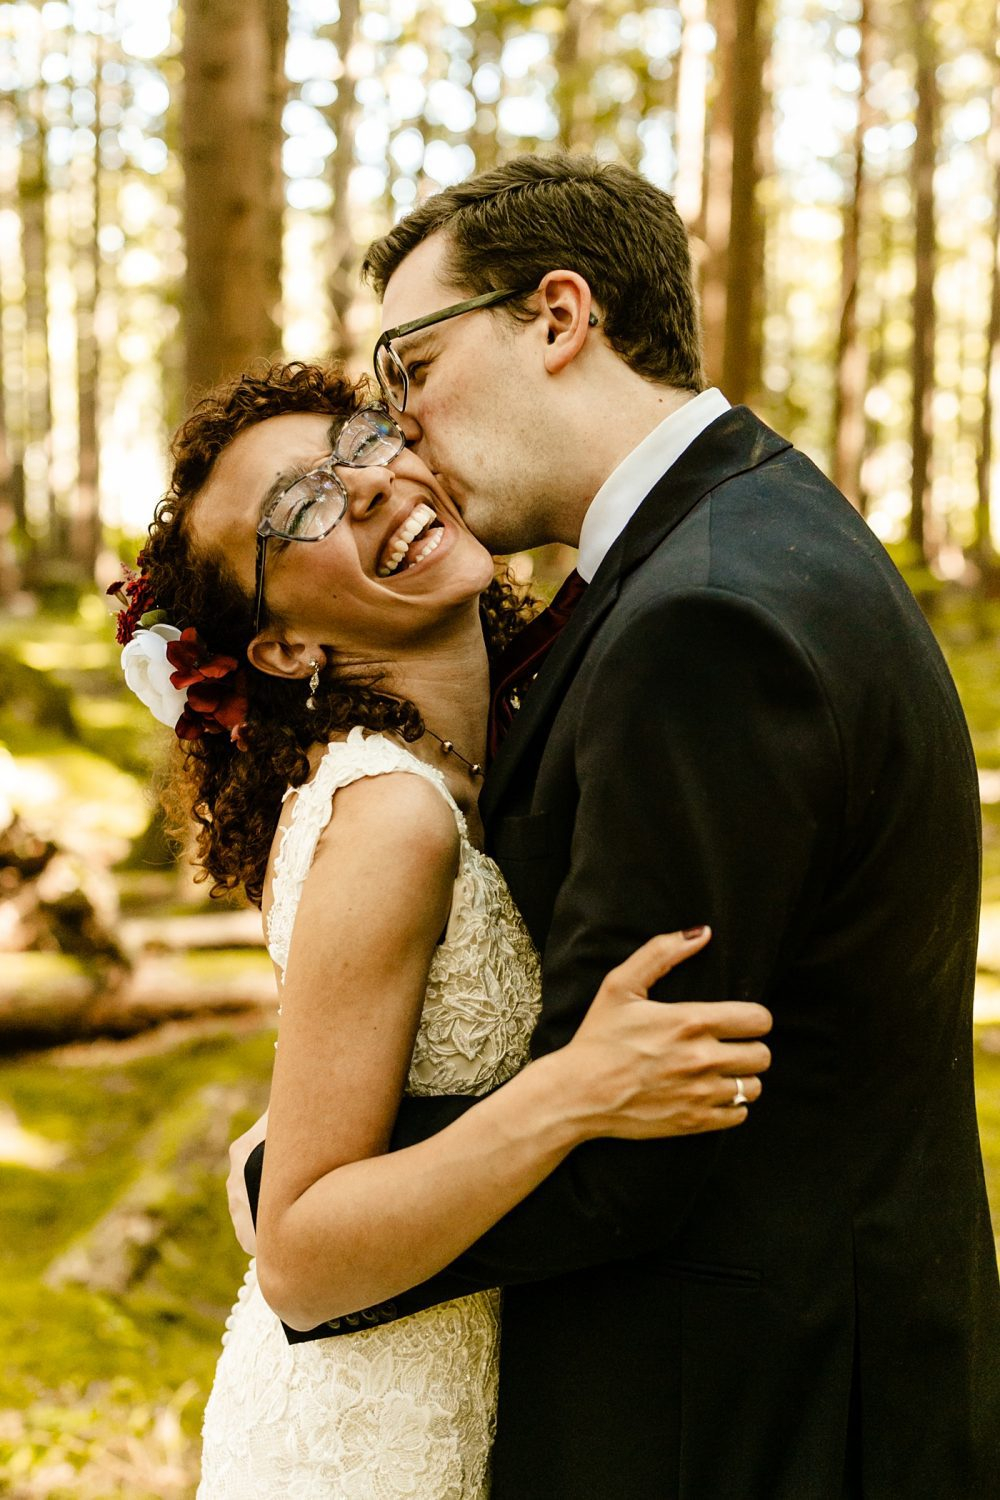 How To Choose The Best Wedding Vendors, married couple elopement kissing on cheek, Black bride hair and makeup, warm tones photographer, emerald forest wedding venue